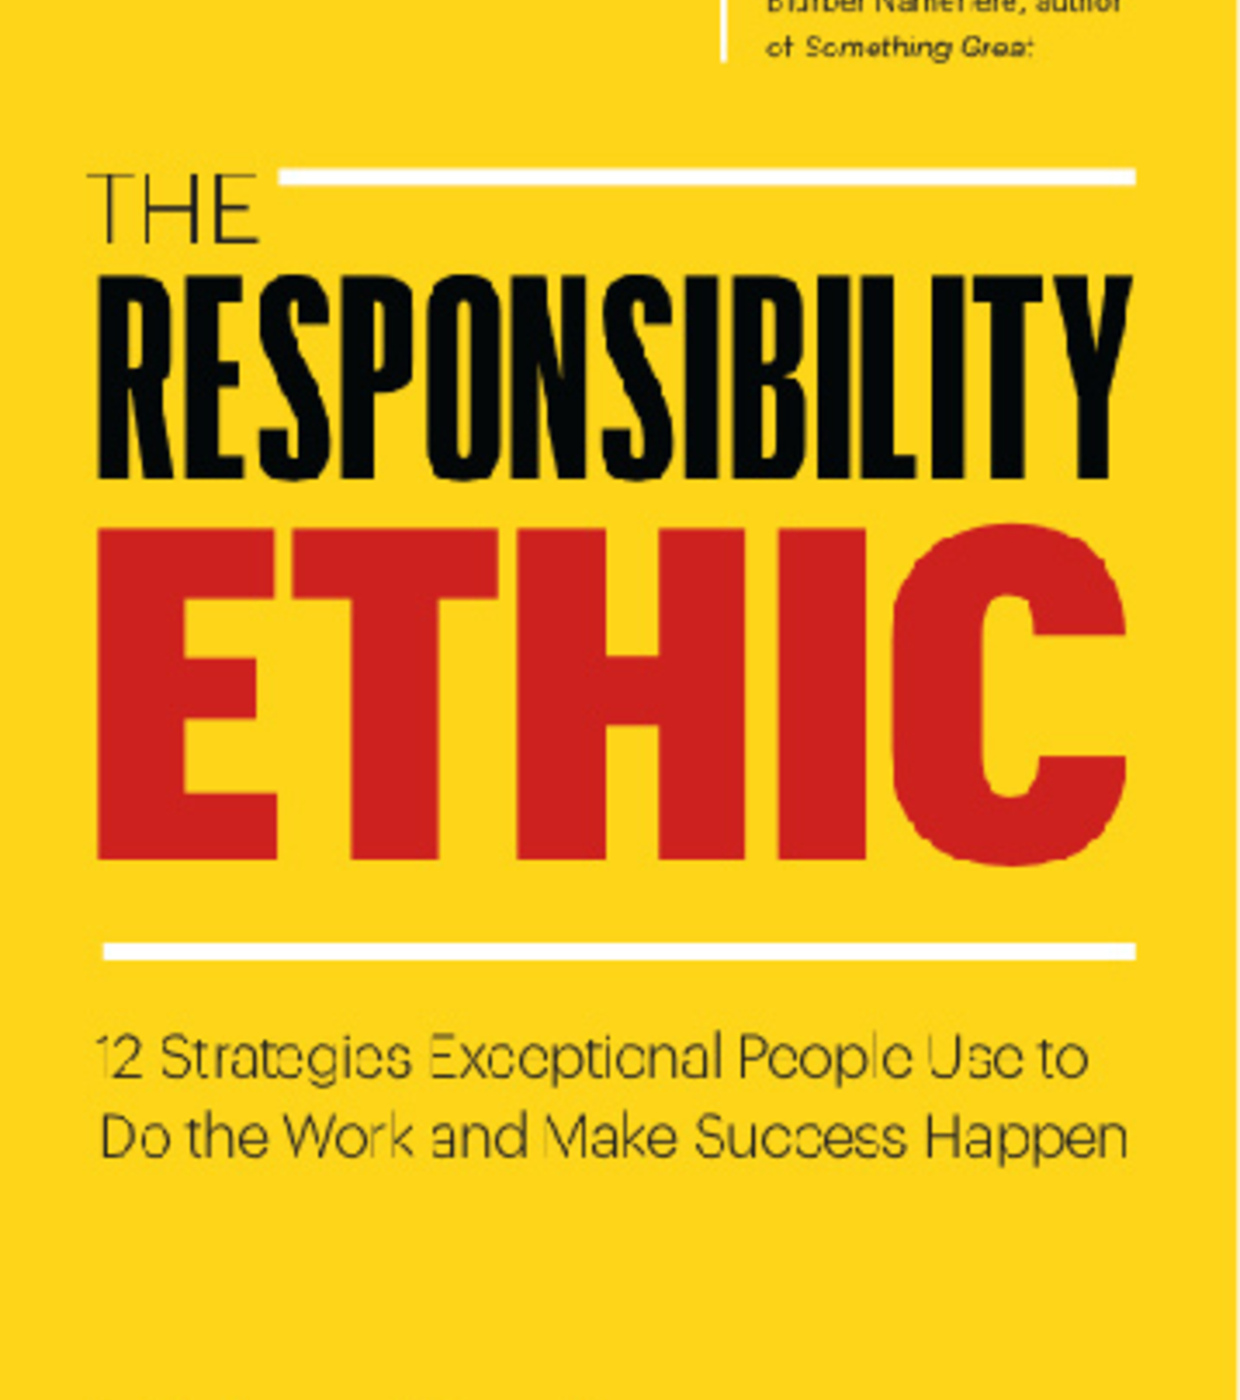 Responsibility ethic book cover edit